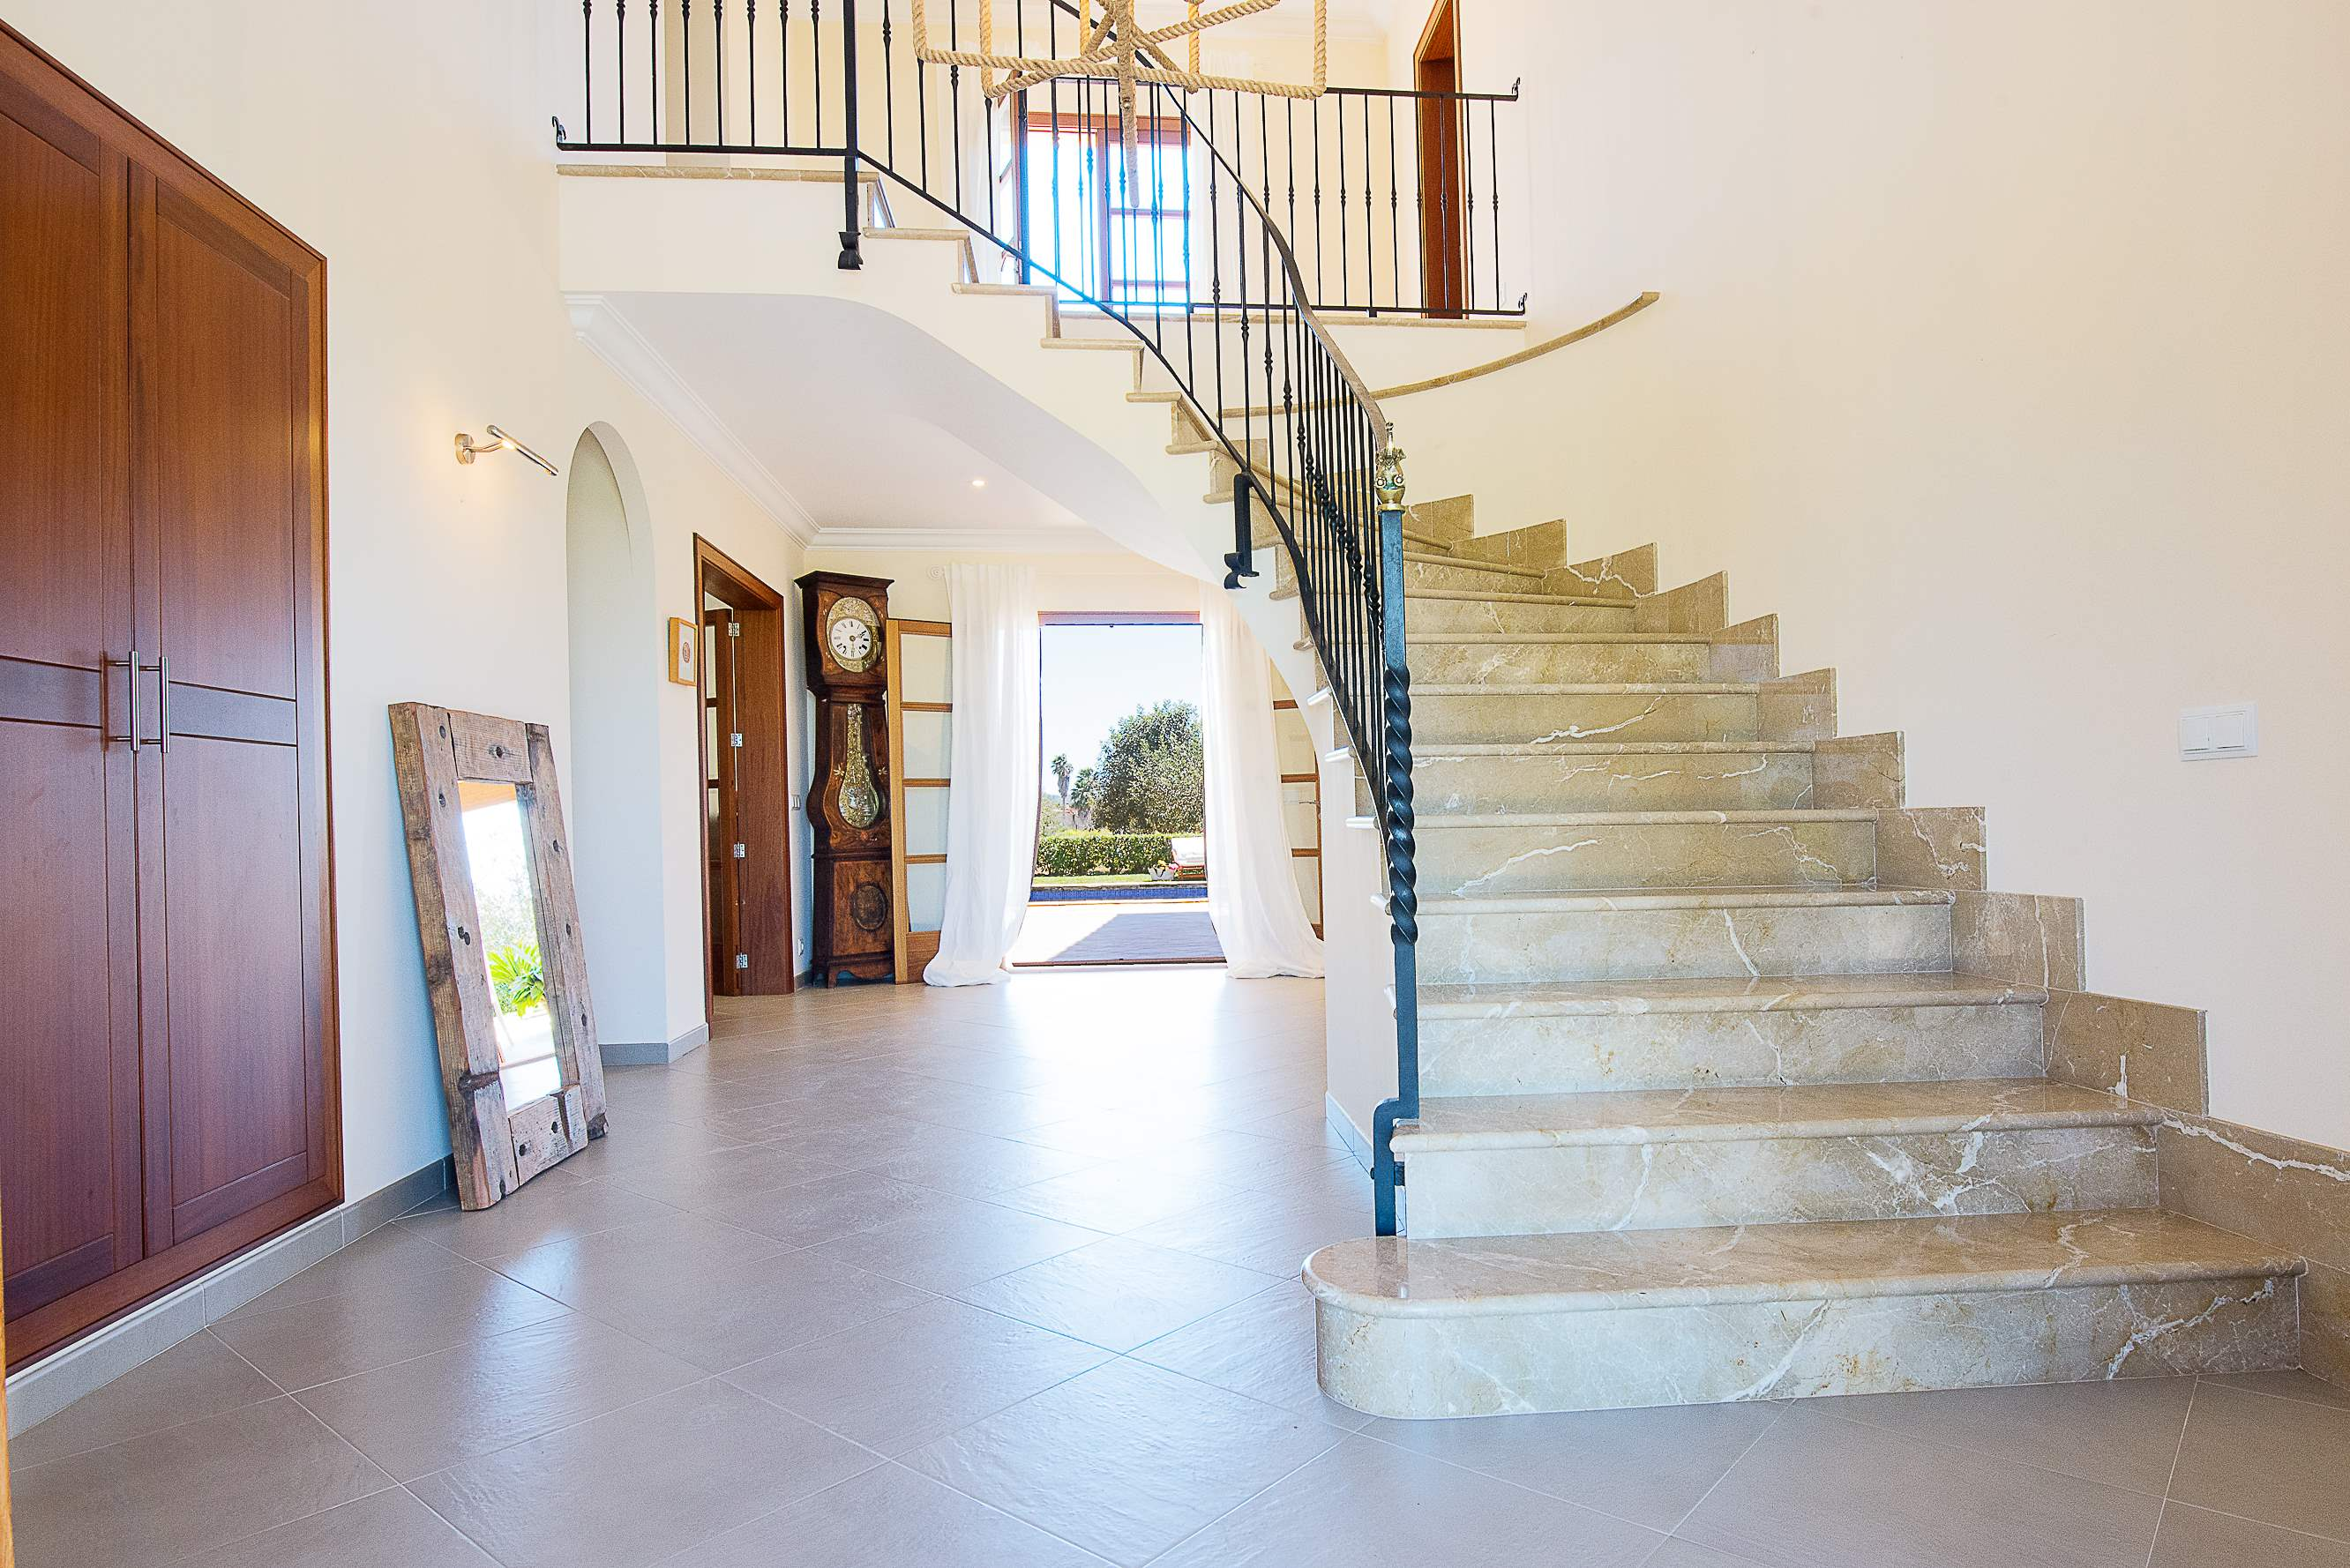 Villa Ses Quaranta, 4 bedroom villa in Campos & Sa Rapita , Majorca Photo #35